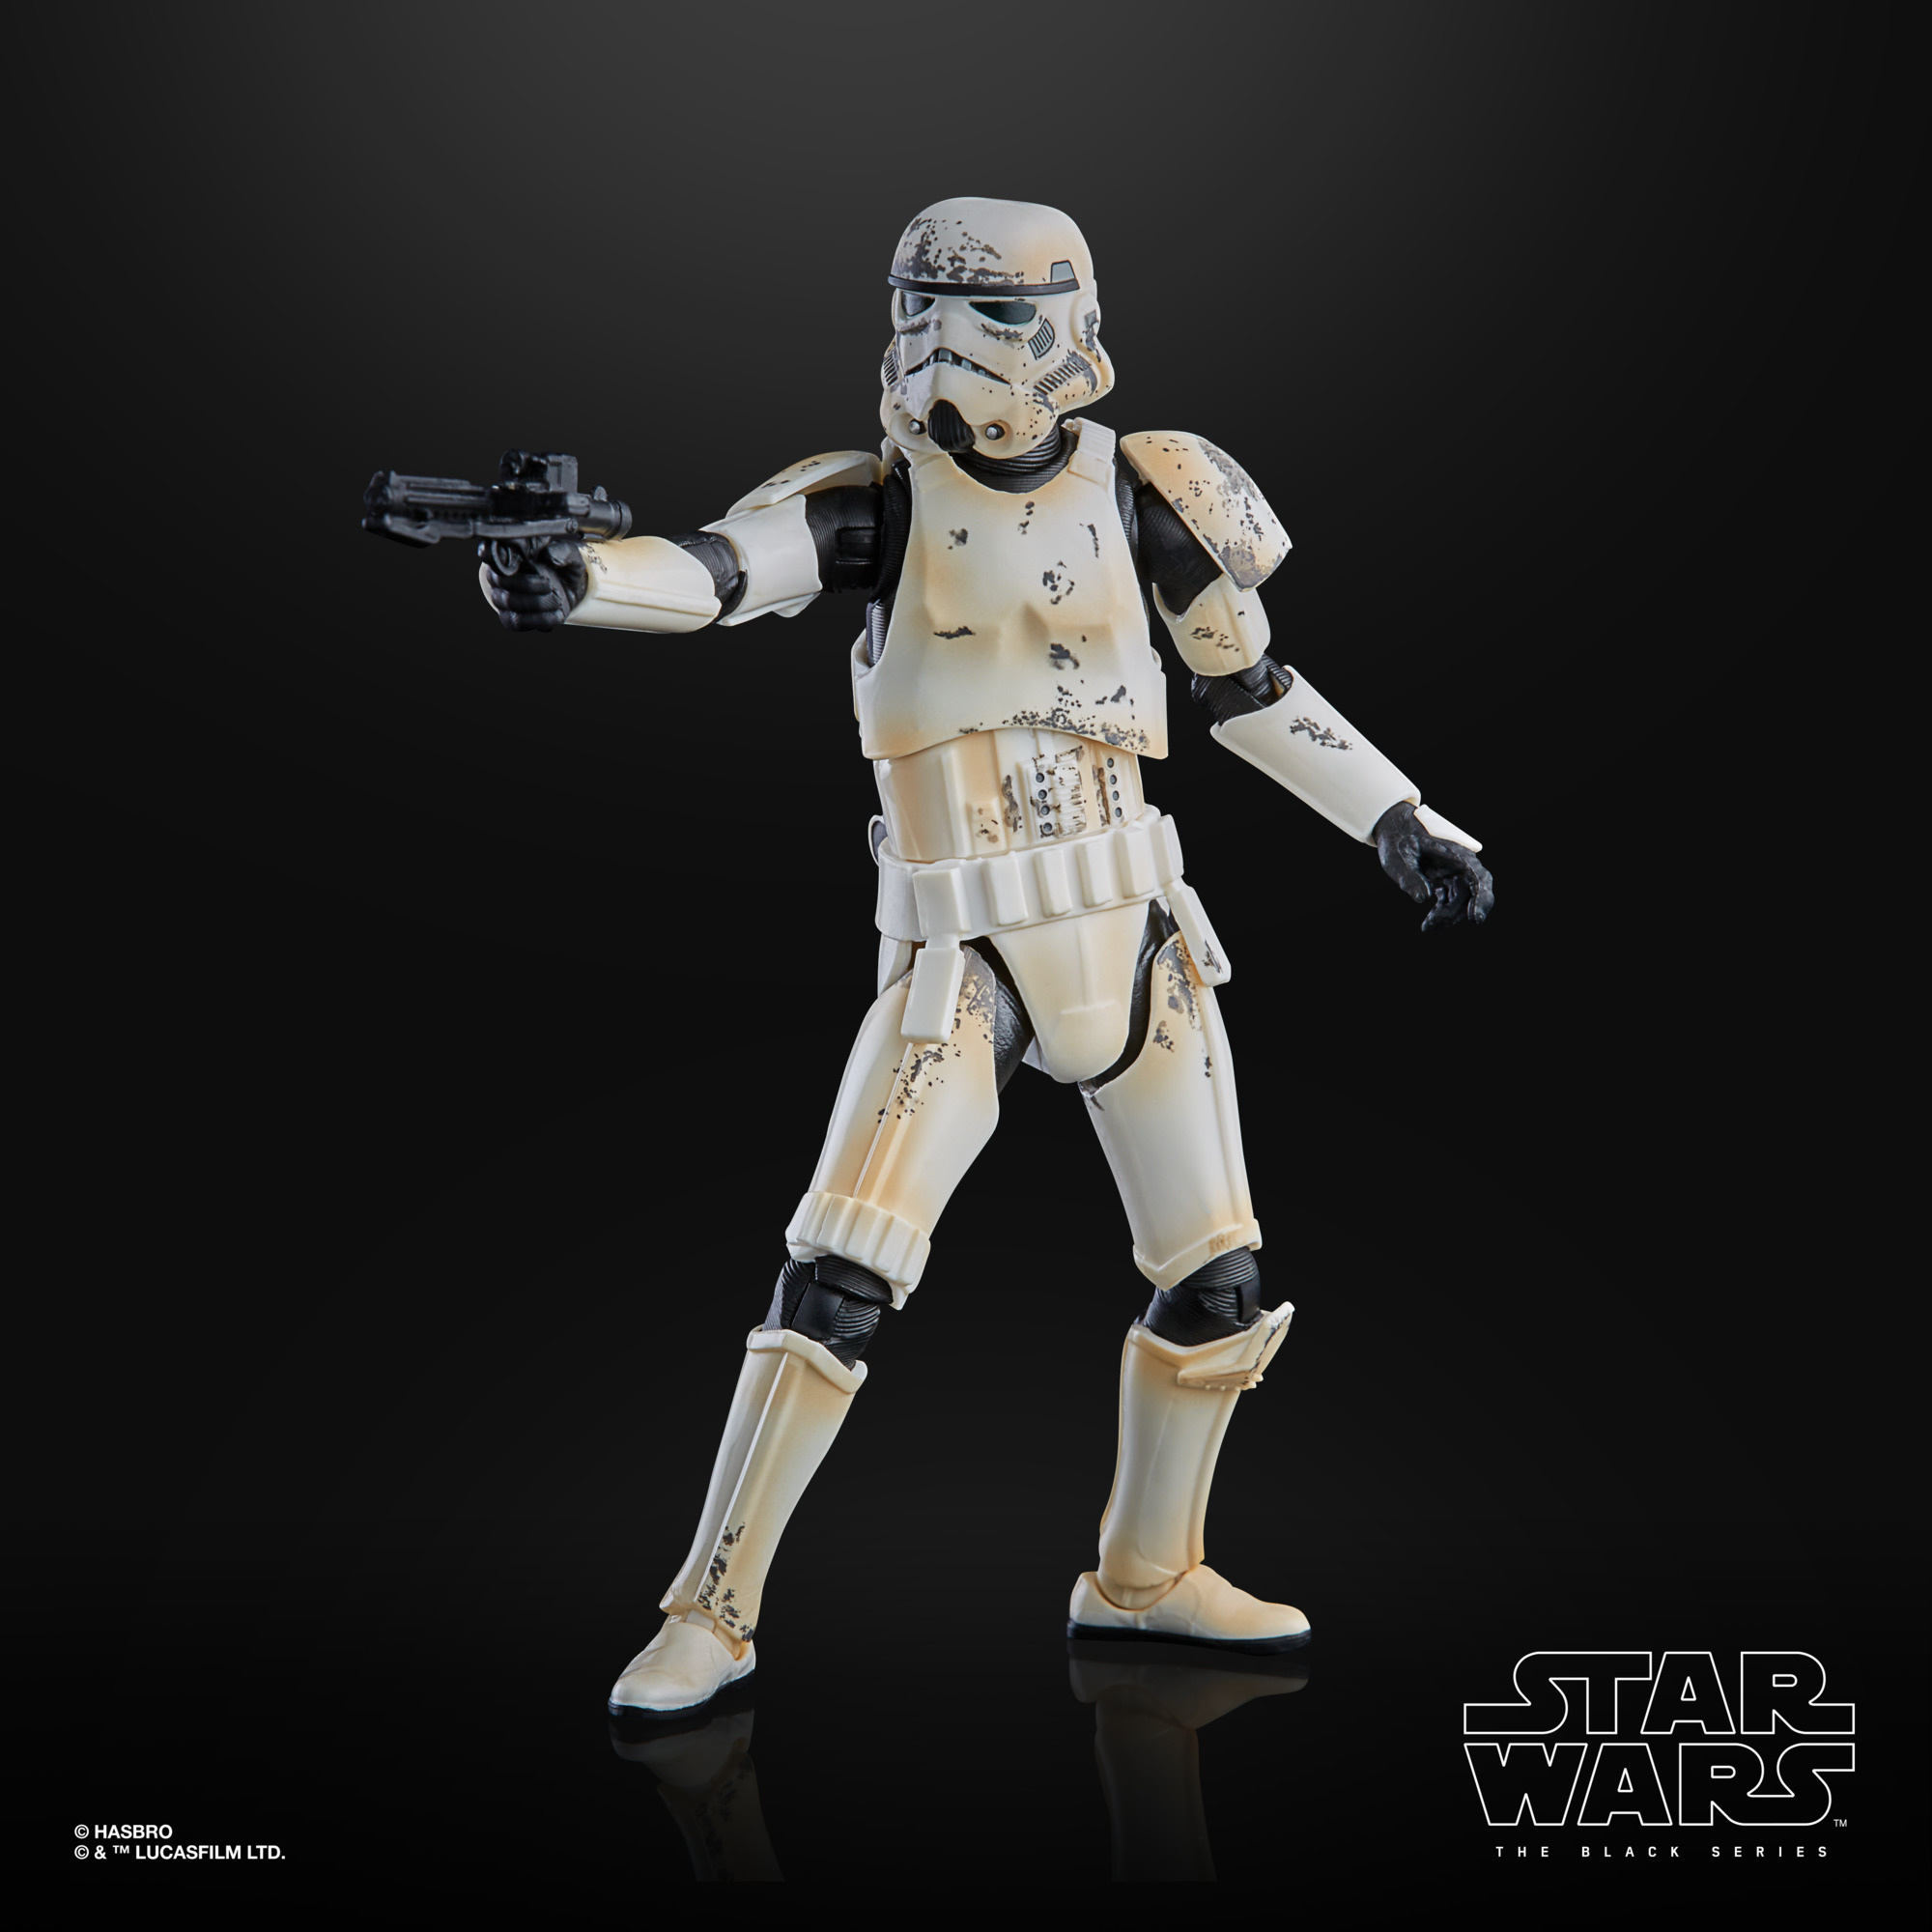 STAR WARS THE BLACK SERIES 6-INCH REMNANT TROOPER Figure – oop (2)